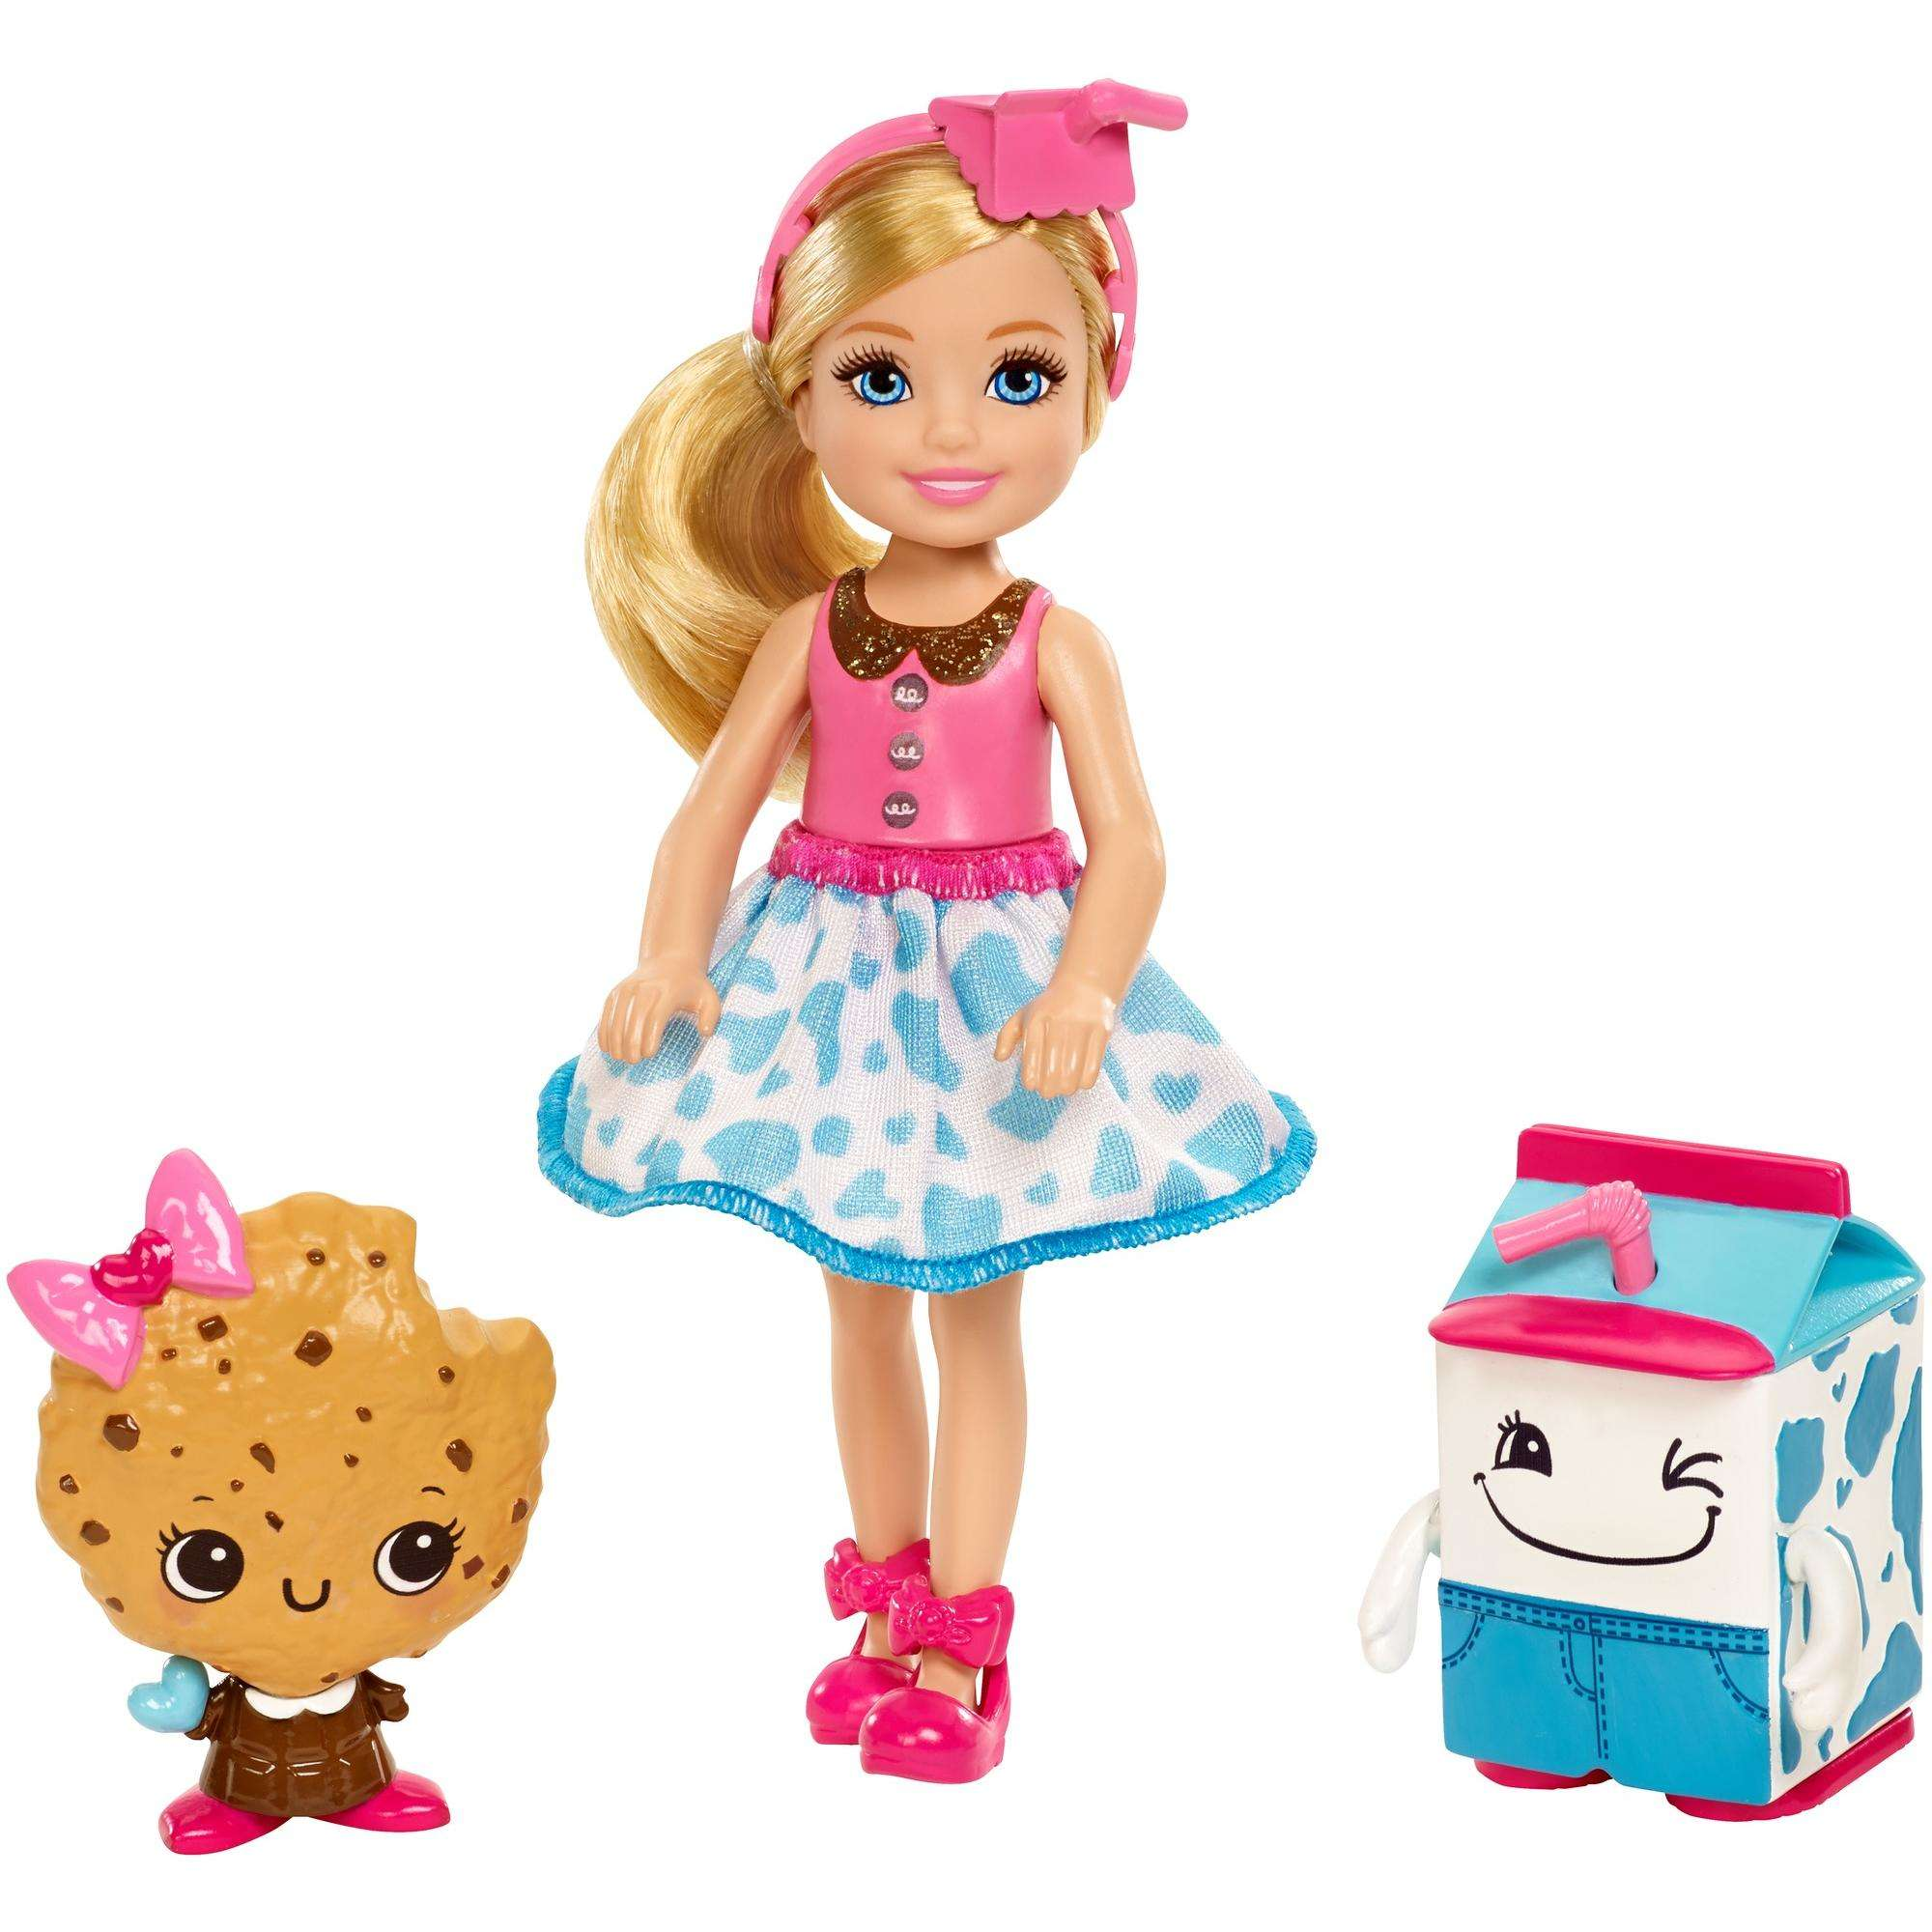 Barbie Dreamtopia Sweetville Chelsea and Cookie Friend by Mattel